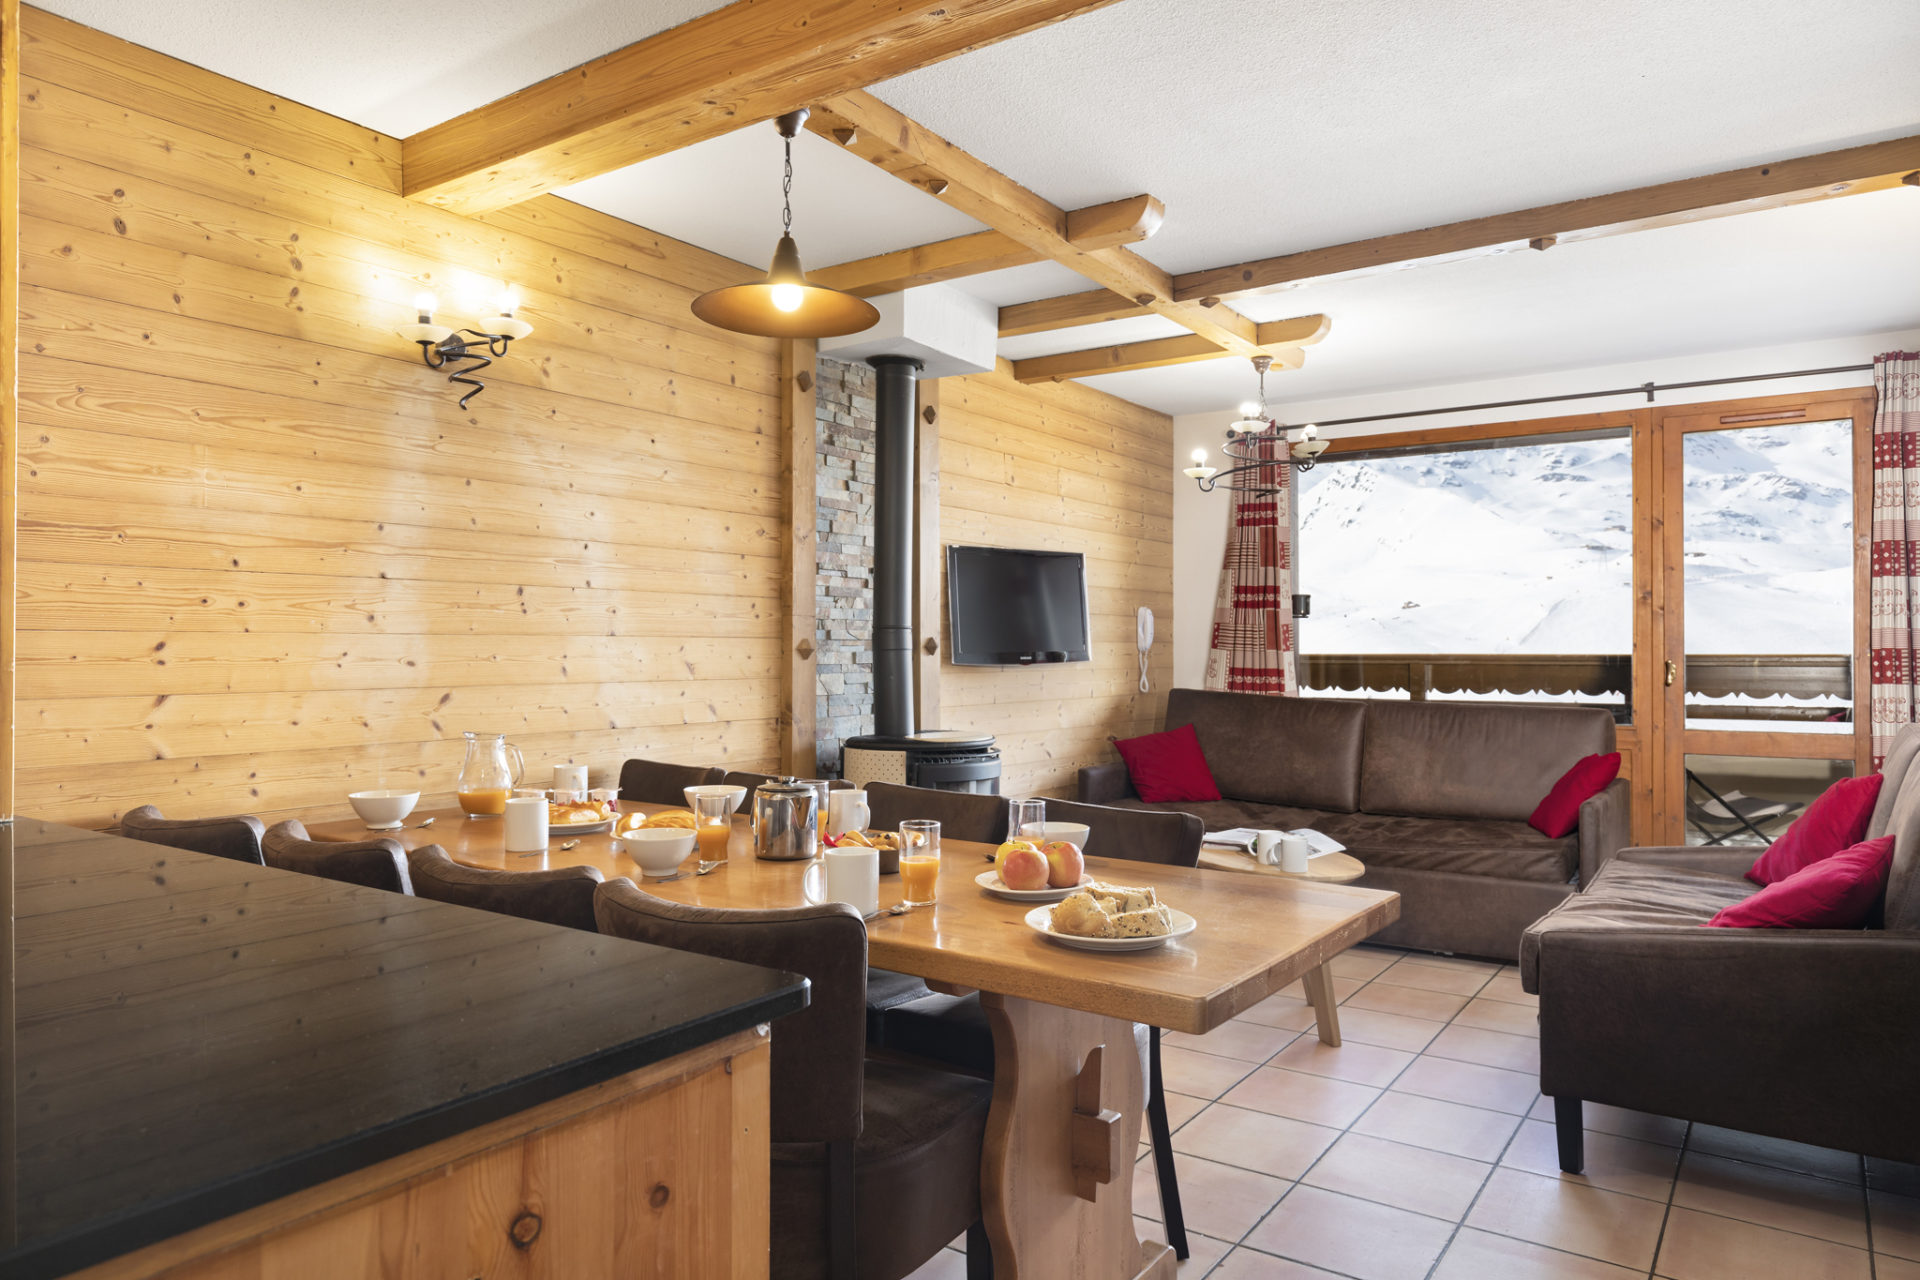 Image of the dining area and living area in an apartment in Les Balcons de Val Thorens